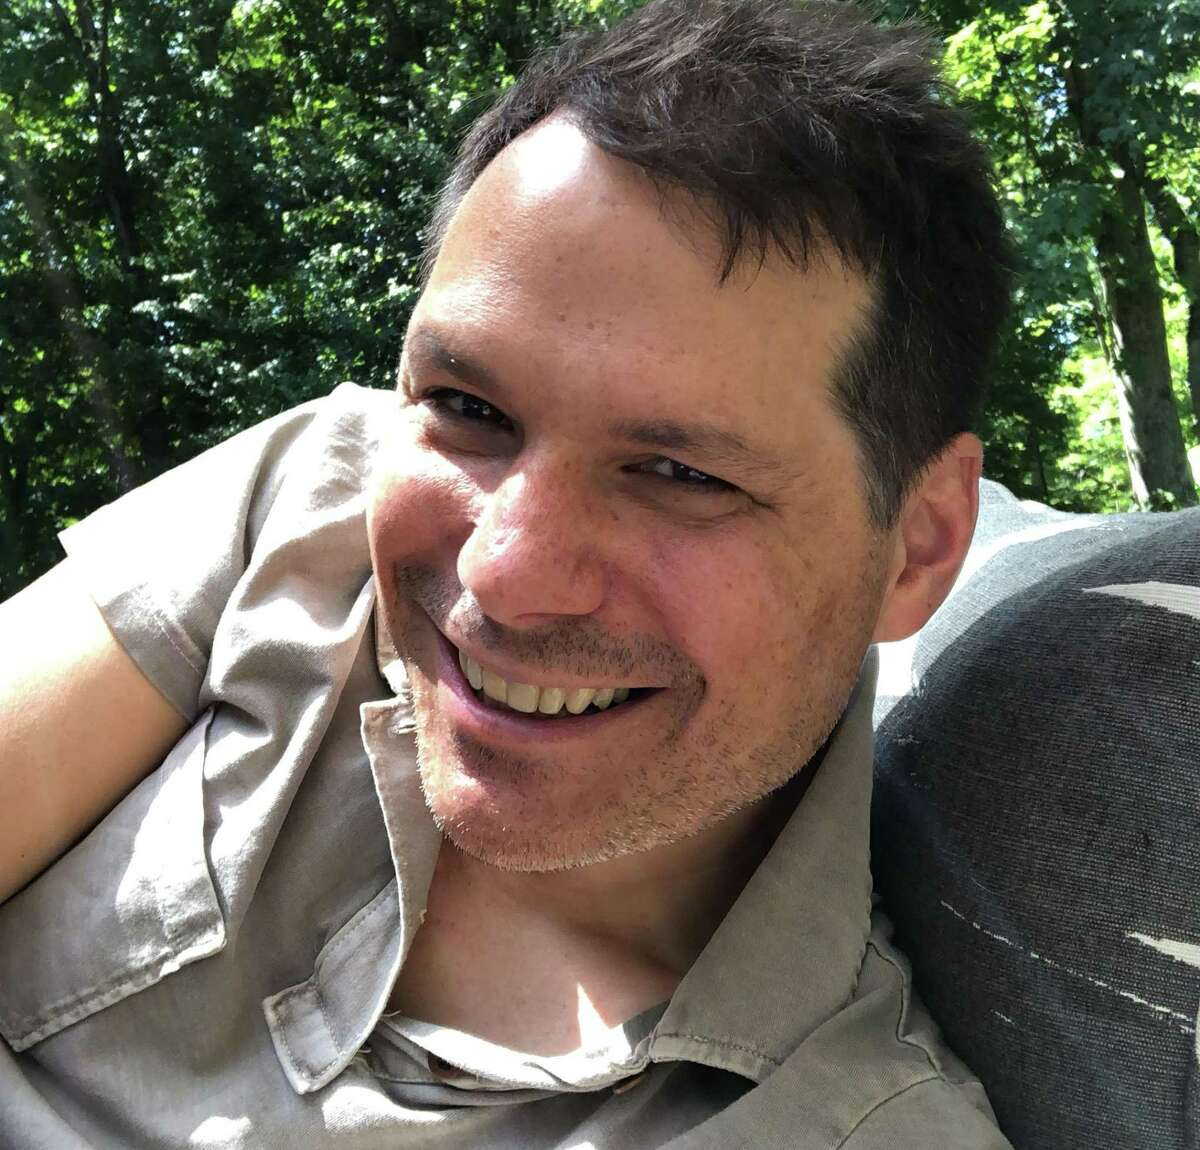 Comedian/actor and author Michael Ian Black, who lives in Redding, will perform two shows at Fairfield Comedy Club's outdoor site, in the backyard of Fairfield's Circle Hotel, Oct. 10.